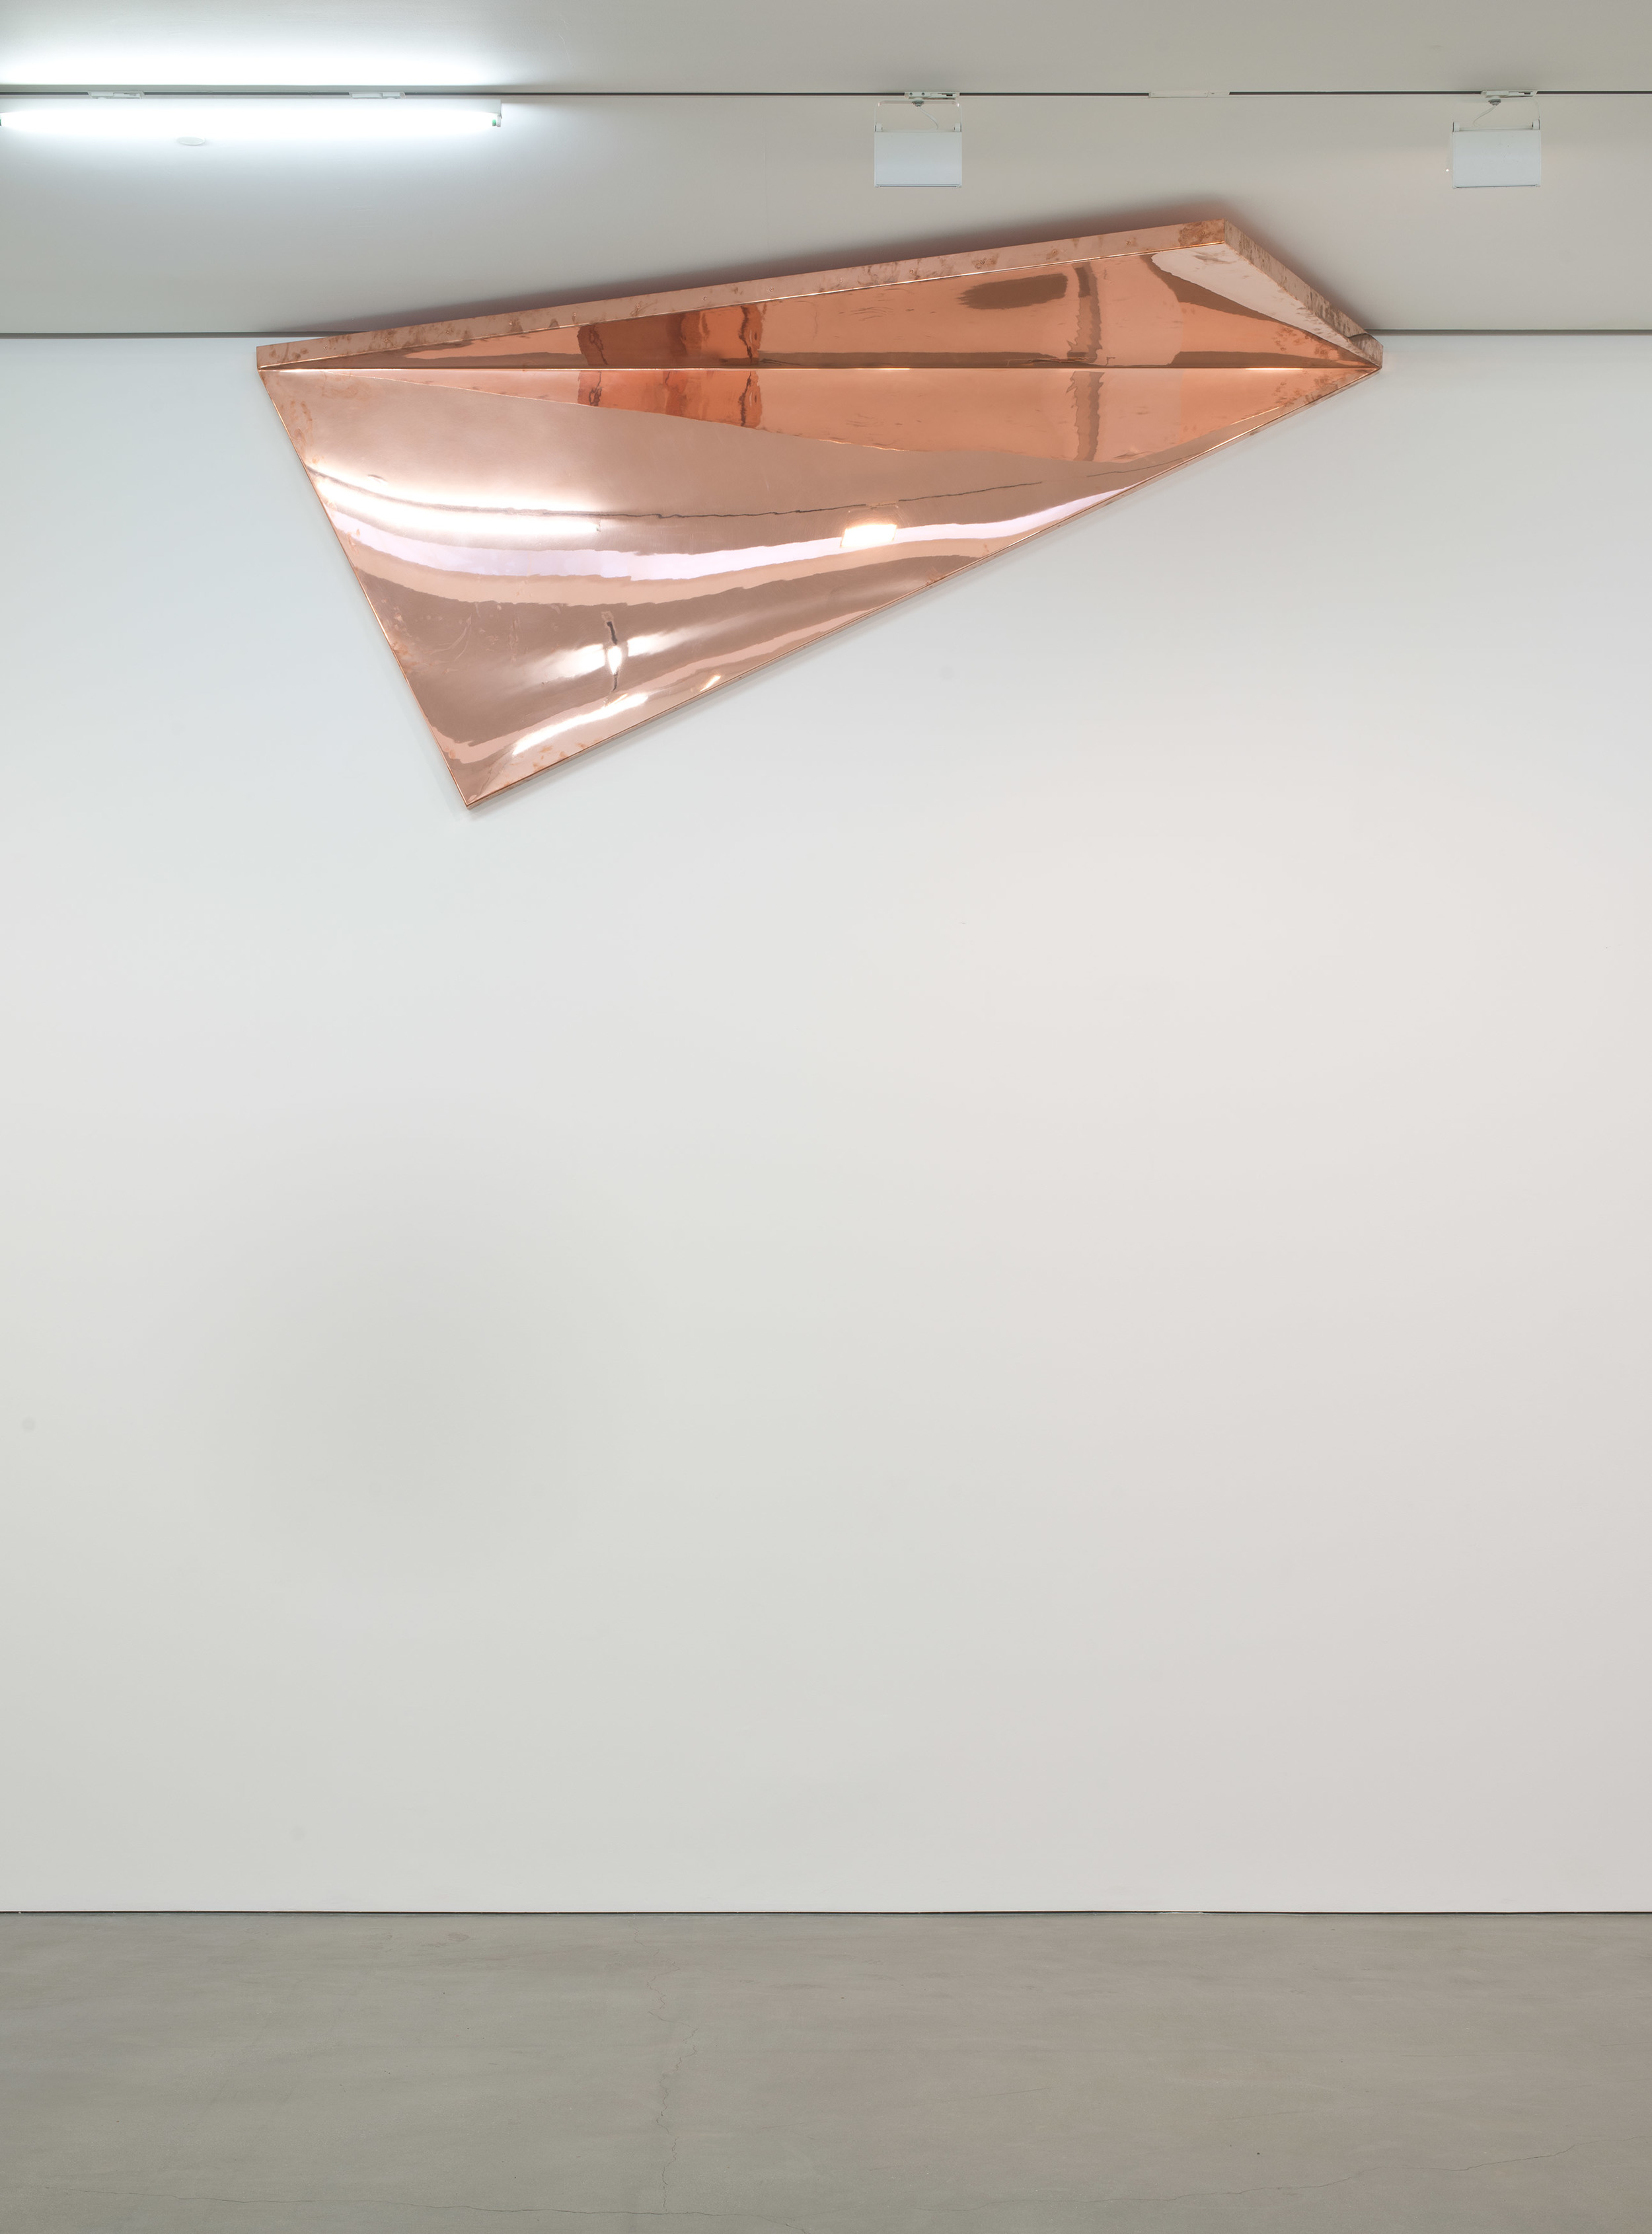 "Copper Surrogate (60"" x 120"" 48 ounce C11000 Copper Alloy, 90º Bend, 127 1/2"" 30º Diagonal / 150º Antidiagonal Bisection: February 20/April 5, 2014, Los Angeles, California)    2014   Polished copper  120 x 60 x 50 inches   Surrogates (Full Sheet, Art Handling), 2011–"